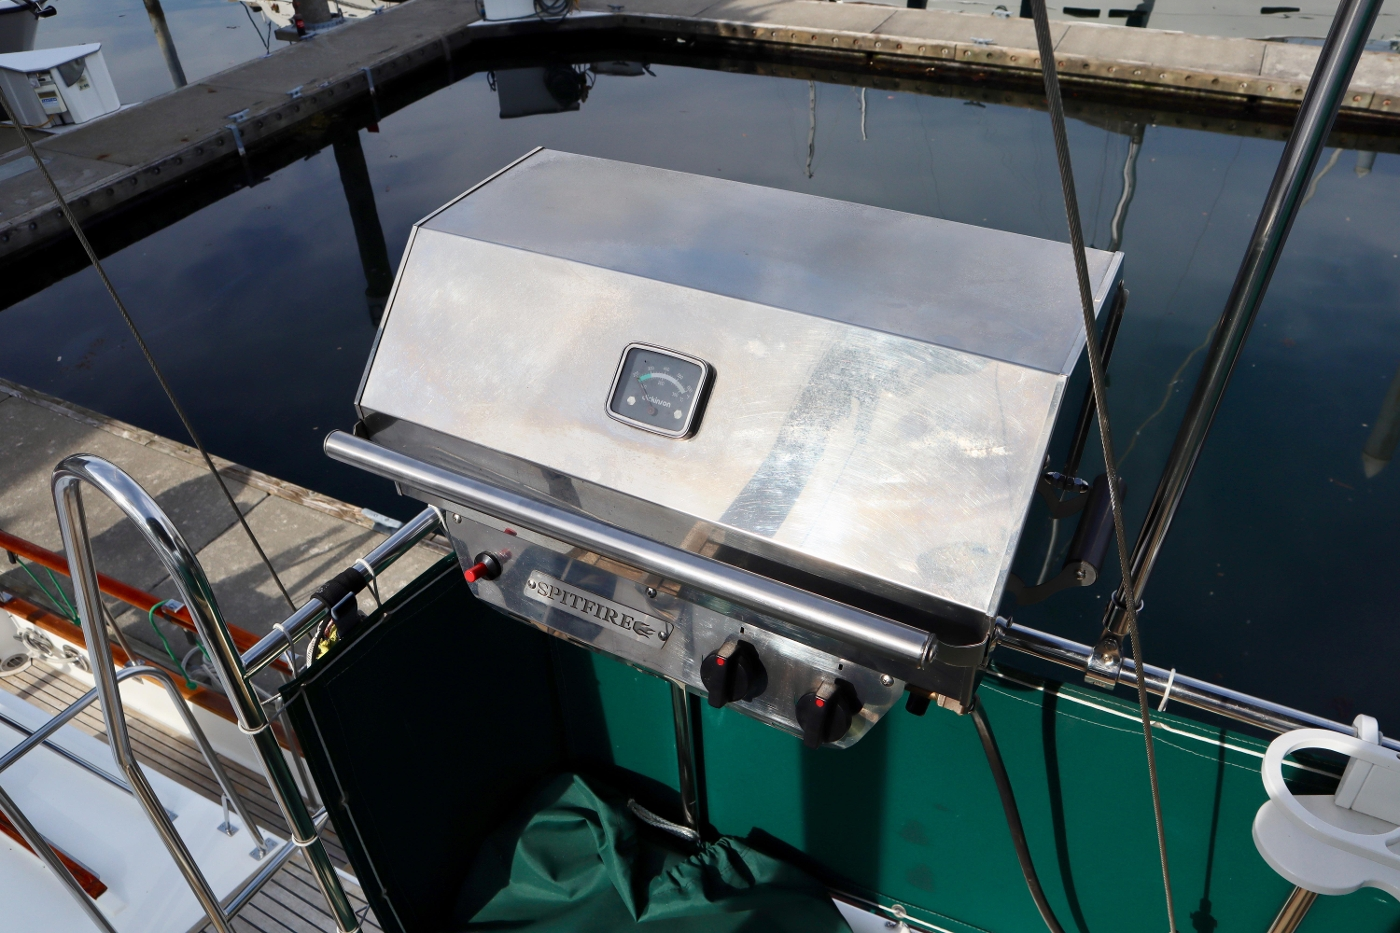 1995 Grand Banks 36 Classic, Barbeque